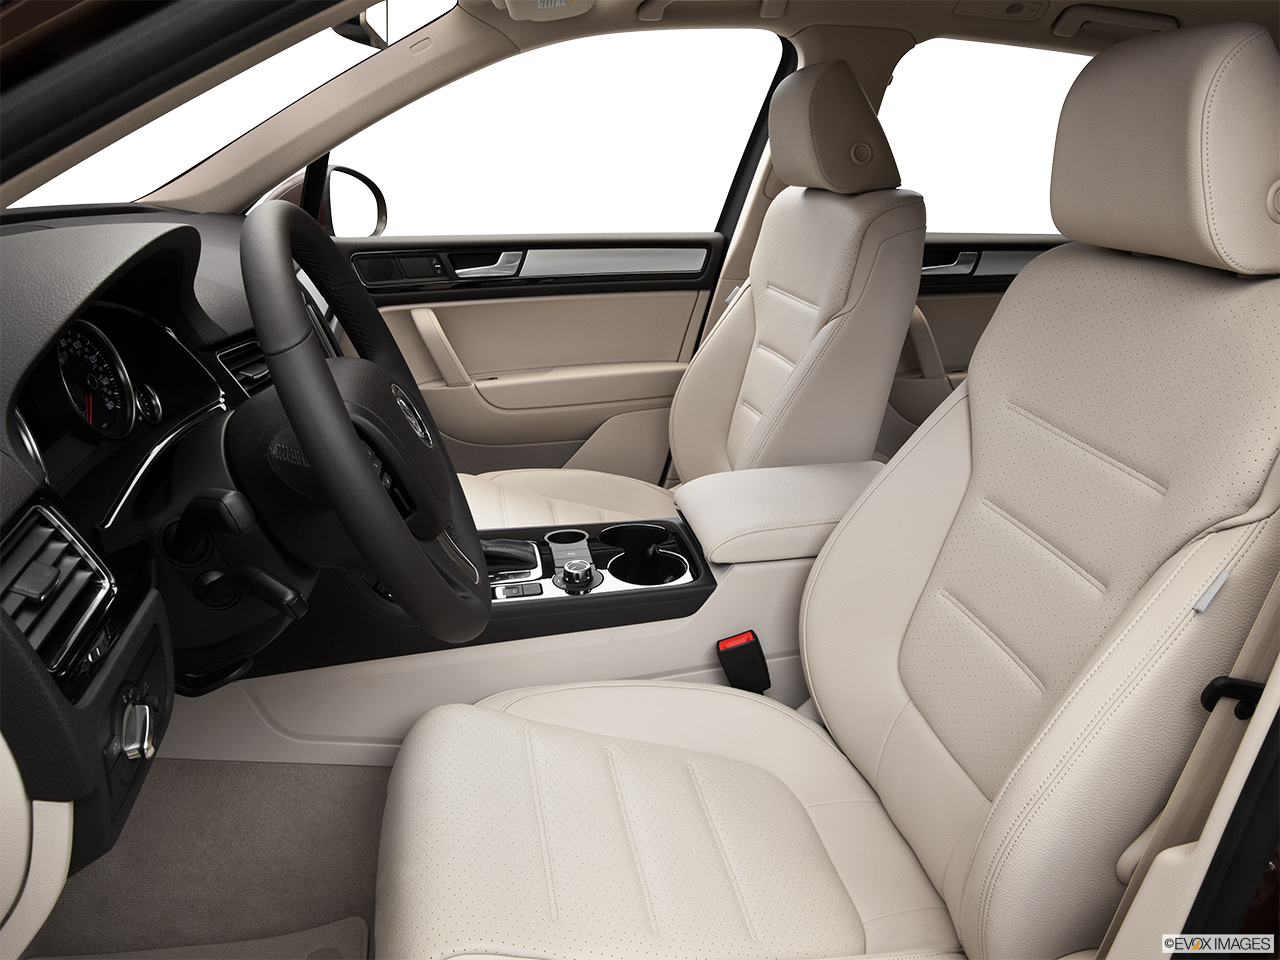 2014 Volkswagen Touareg 2 V6 Sport Front seats from Drivers Side.